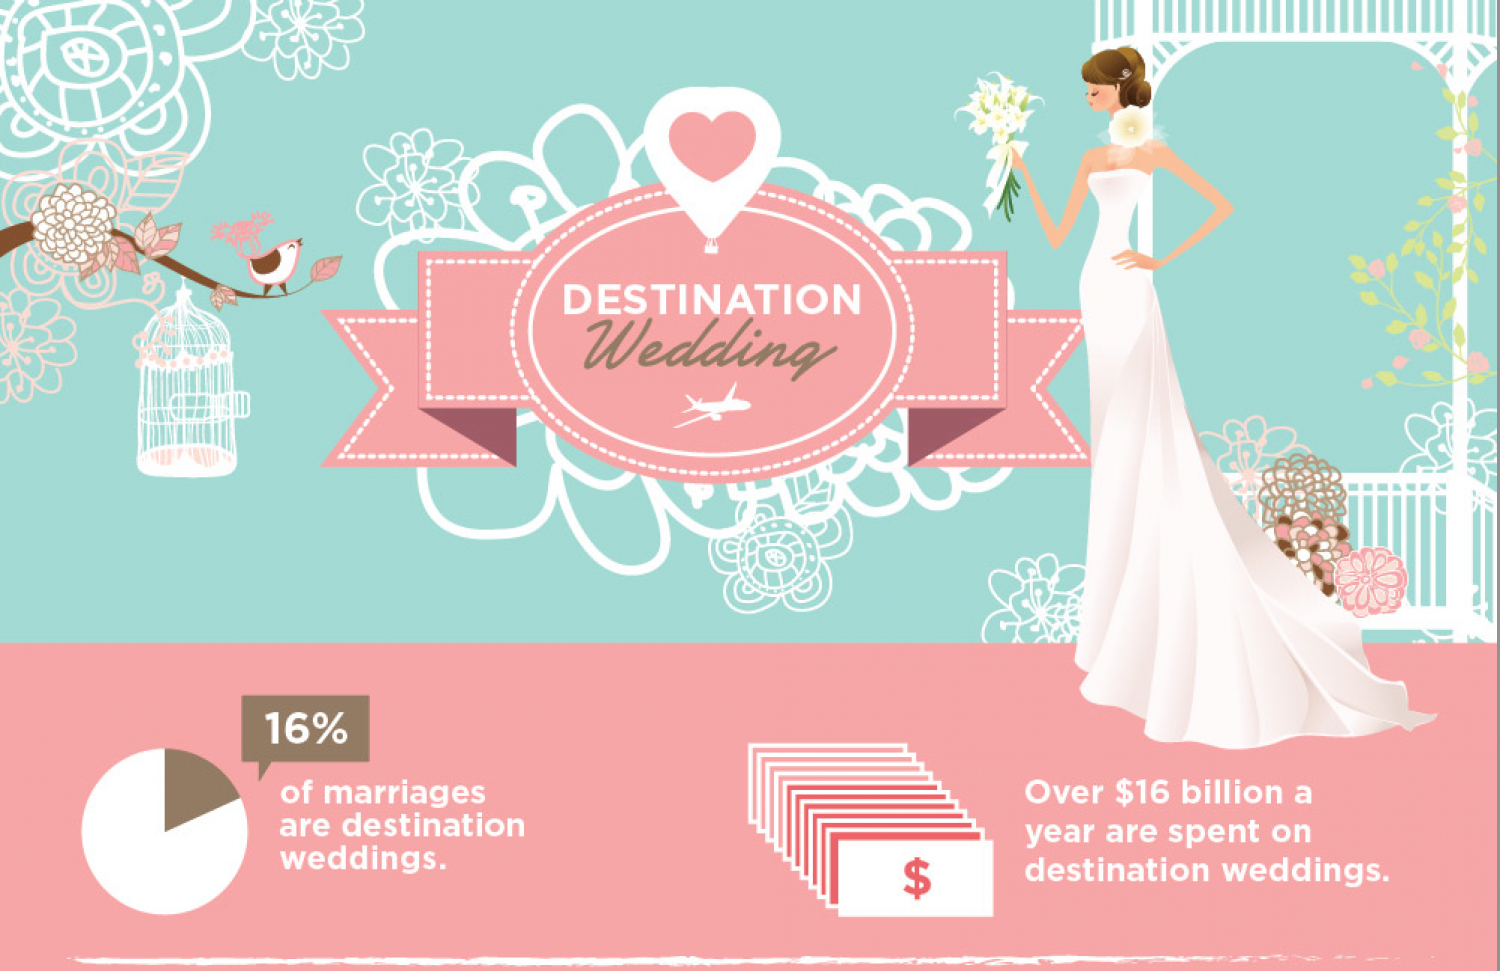 destination wedding ideas - Wedding Decor Ideas